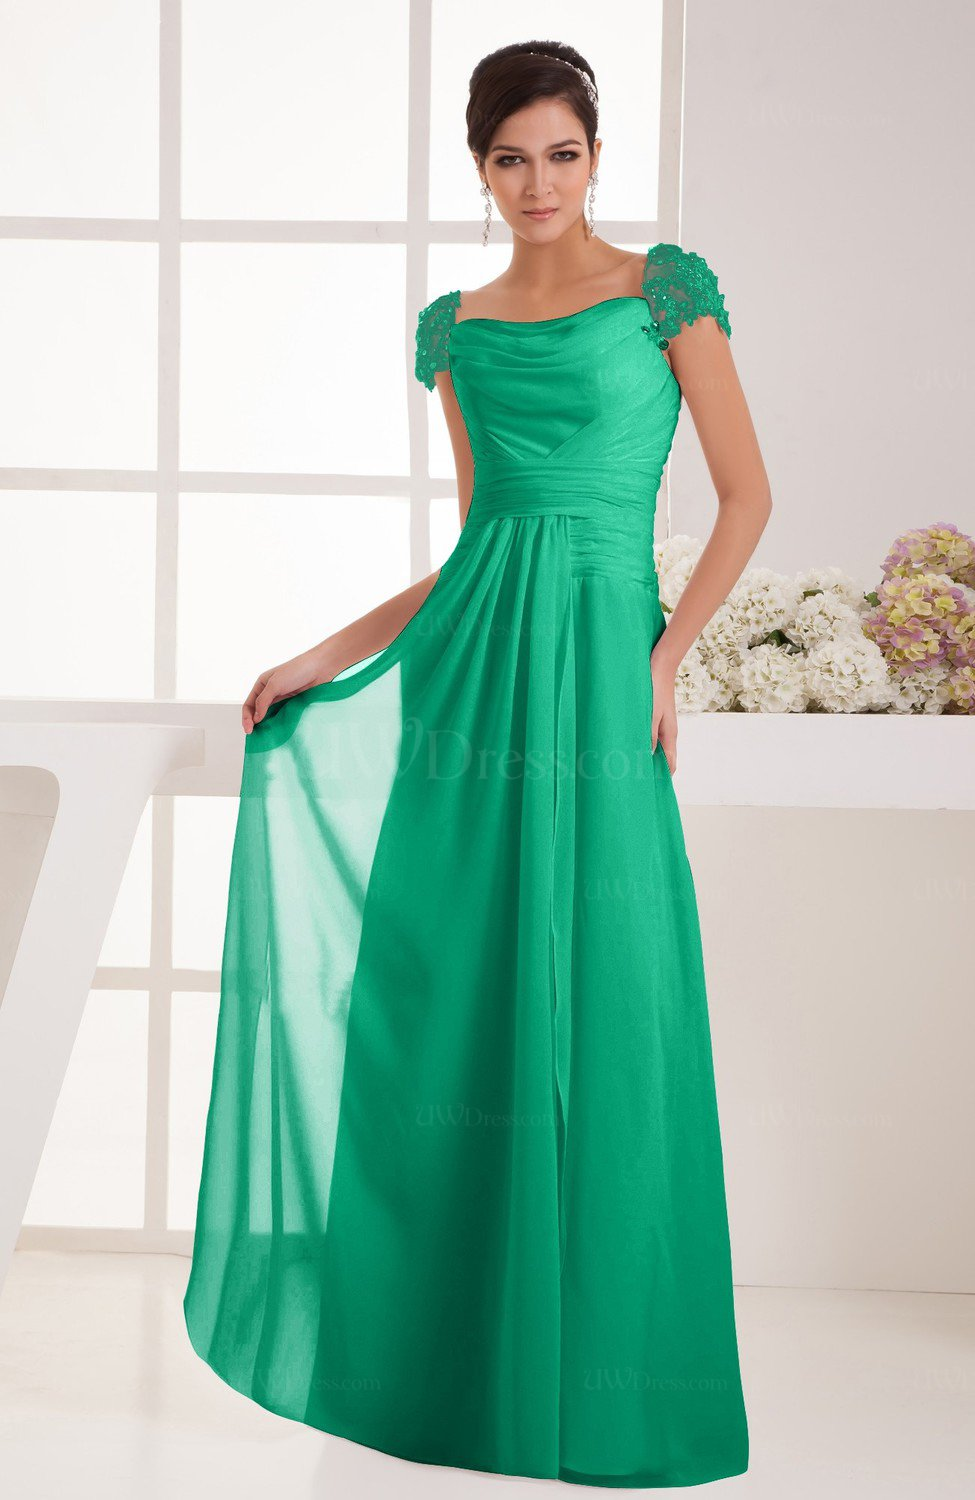 Sea Green with Sleeves Bridesmaid Dress Chiffon Trendy Floor Length ...